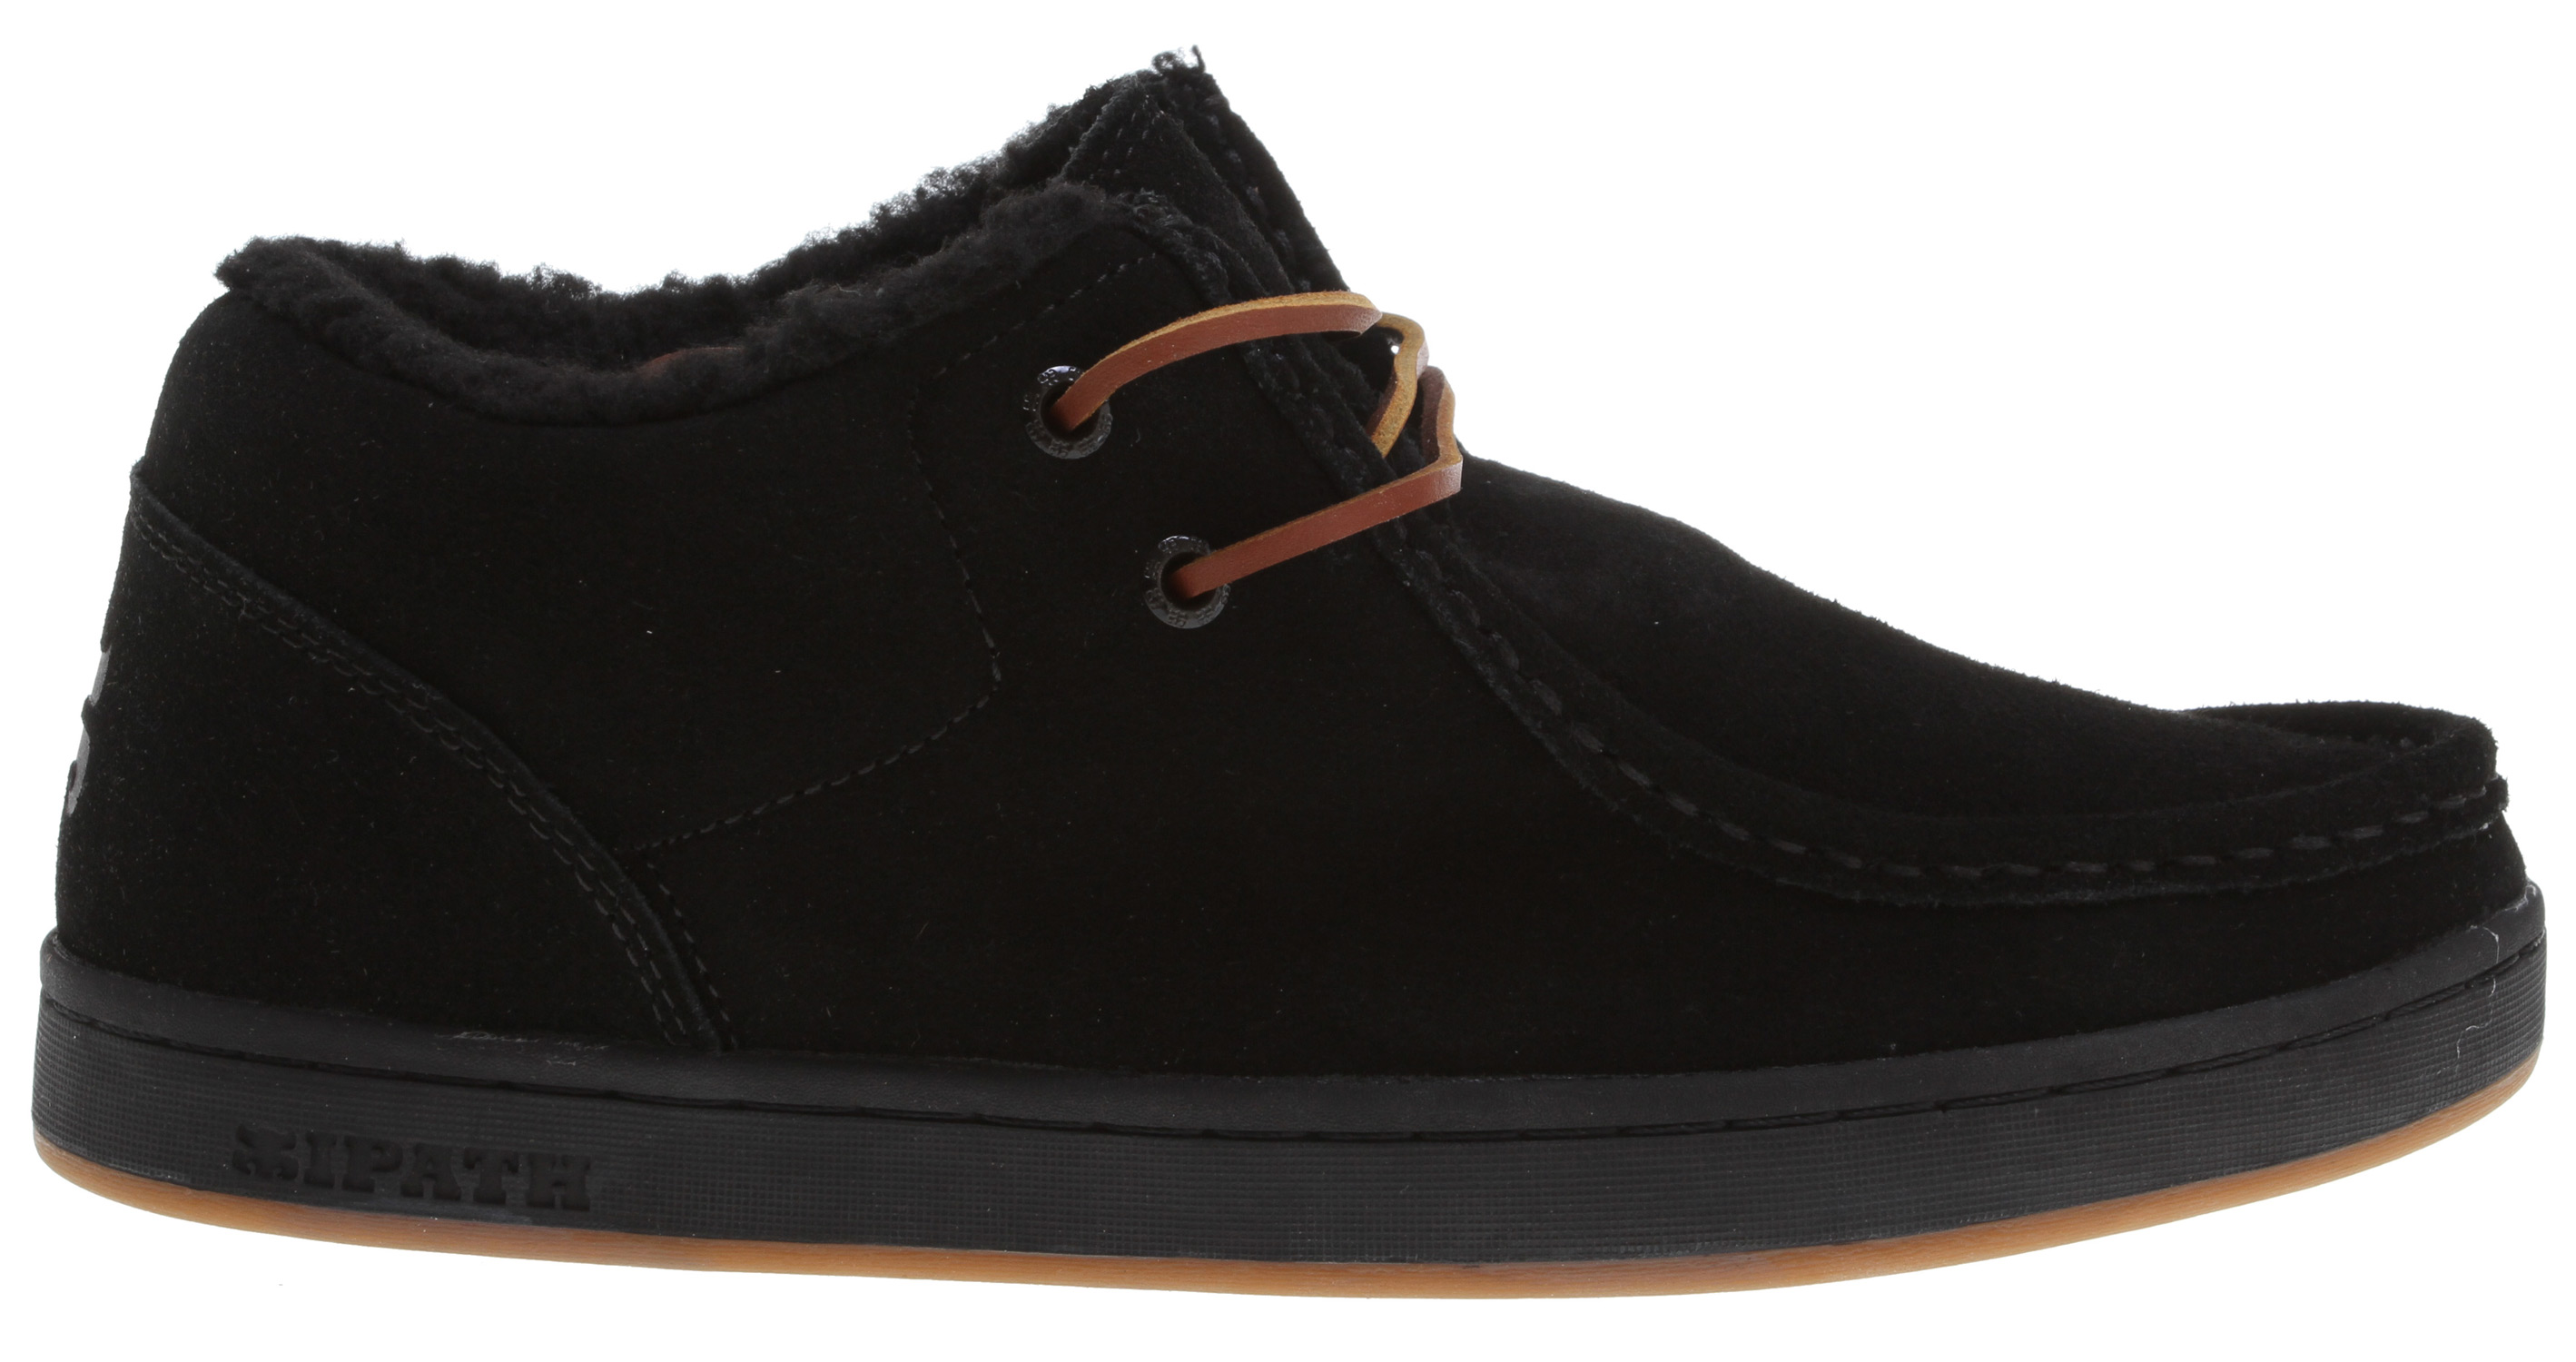 Skateboard Slip into something a little more comfortable with Ipath. These new casual shoes feature a vegan leather upper material, synthetic shearling liner to keep your feet toasty warm and a rubber gum sole that delivers plenty of traction and grip for when conditions are slick.Key Features of the Ipath Cat Shearling Shoes: Upper Material:[upper] vegan leather; [lining] synthetic shearling Sole: gum rubber Lacing: two-eye Recommended Use: casual Manufacturer Warranty: 1 year - $58.95